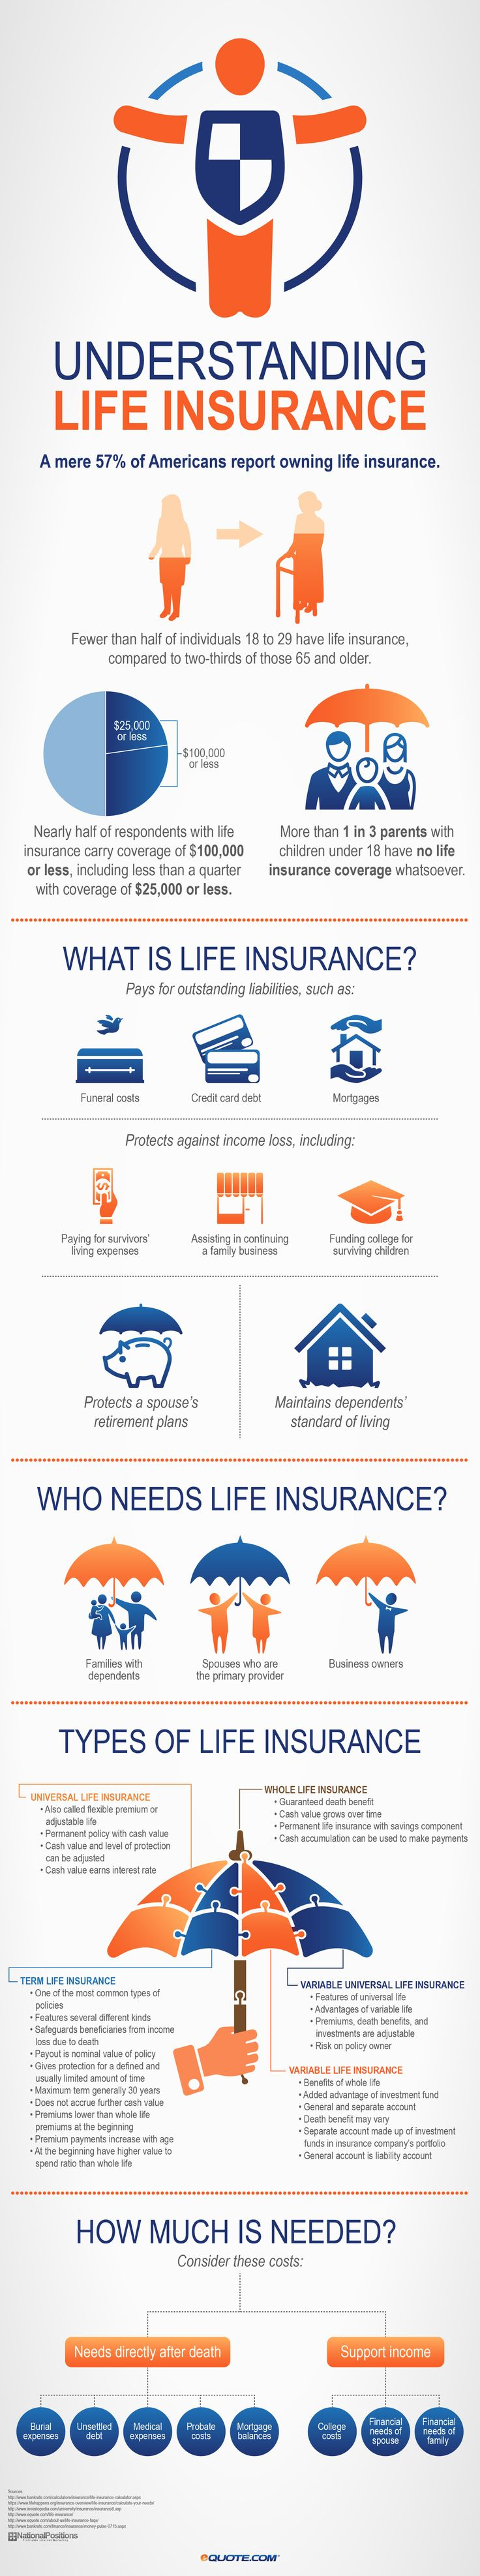 Direct General Insurance Quotes Best 25 Compare Life Insurance Ideas On Pinterest  Compare Life